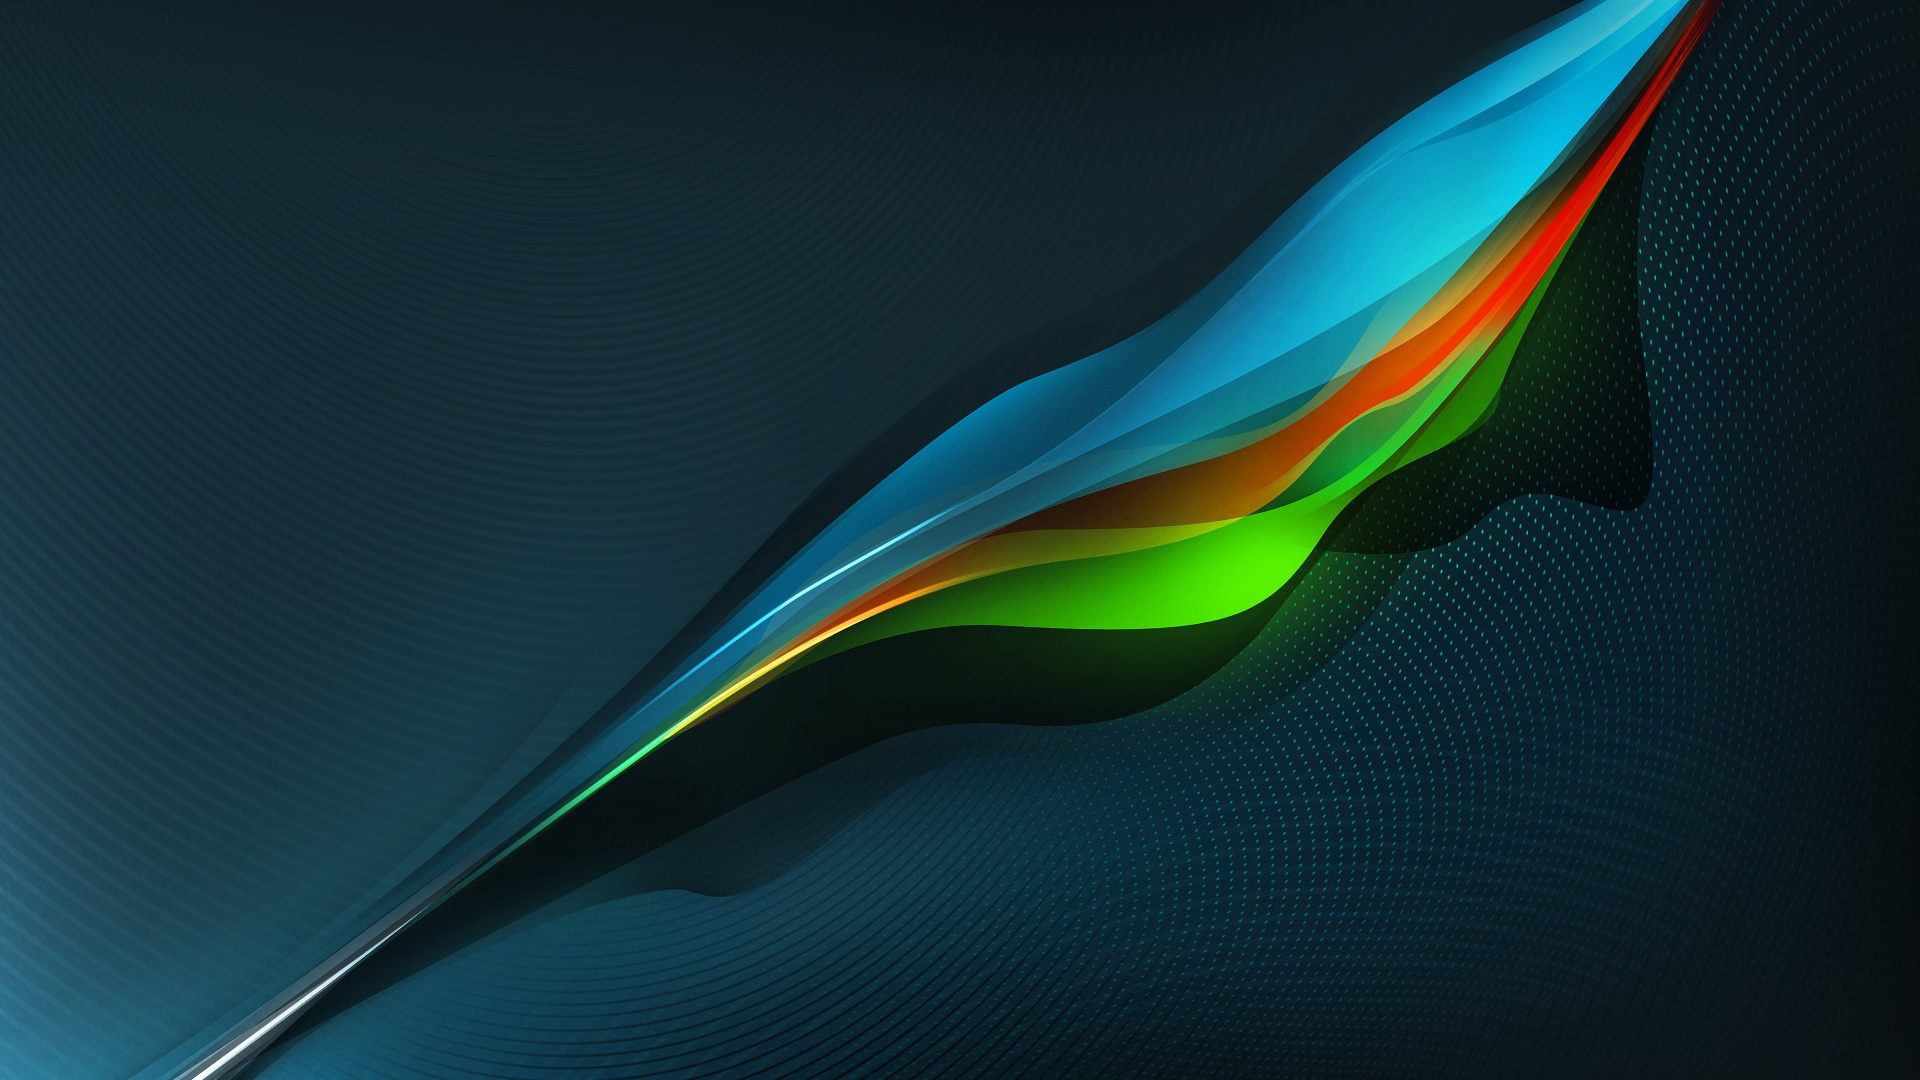 Abstract For Laptop Hd 500831 Wallpaper wallpaper